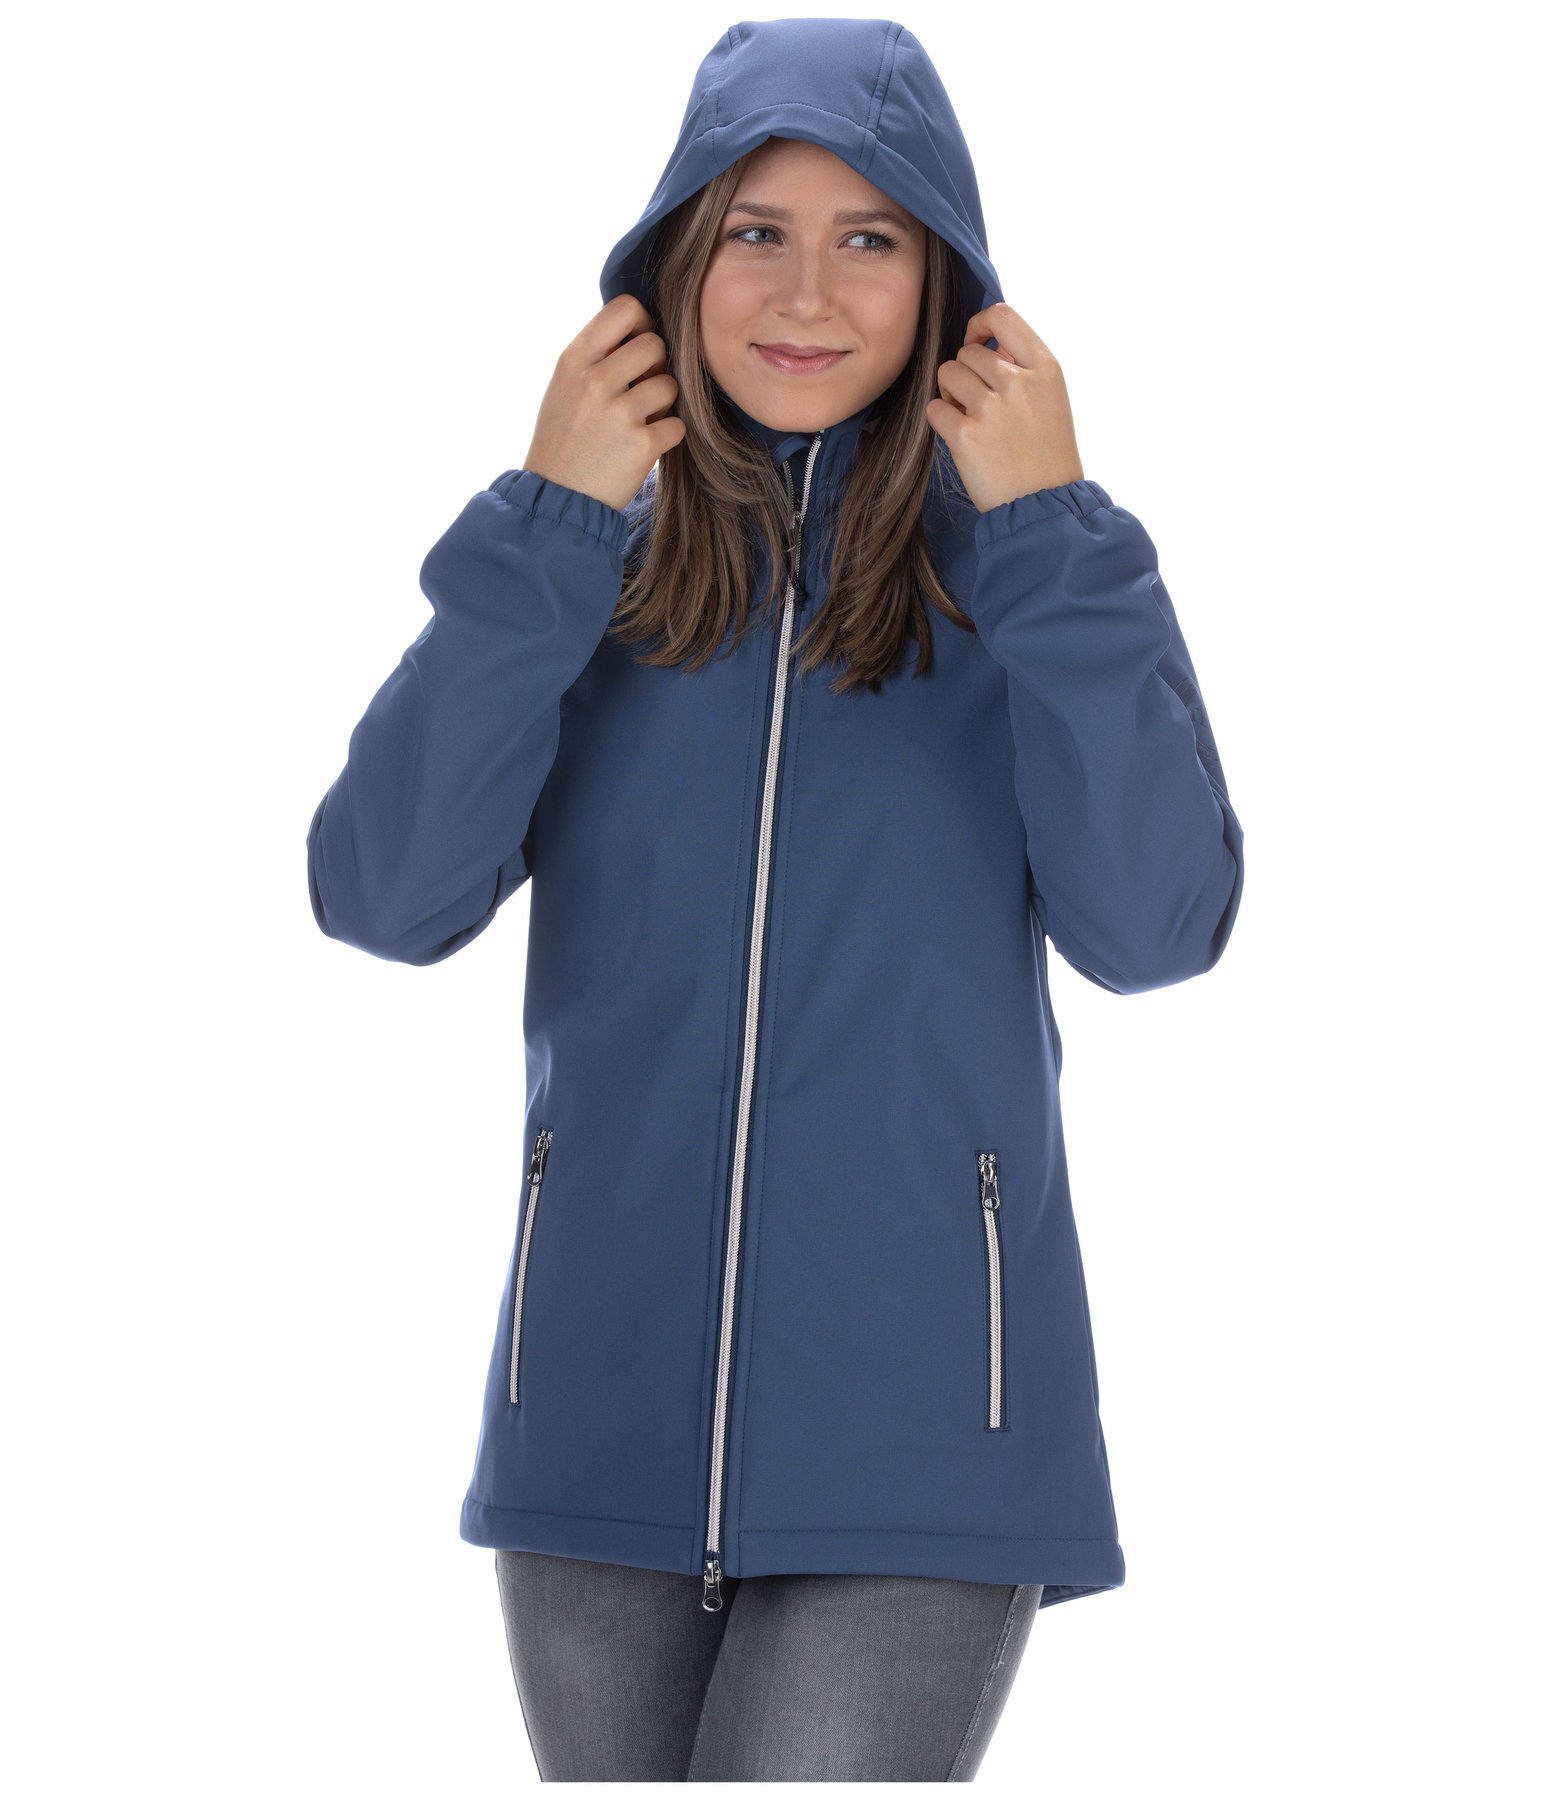 Children's Soft Shell Jacket Sadie